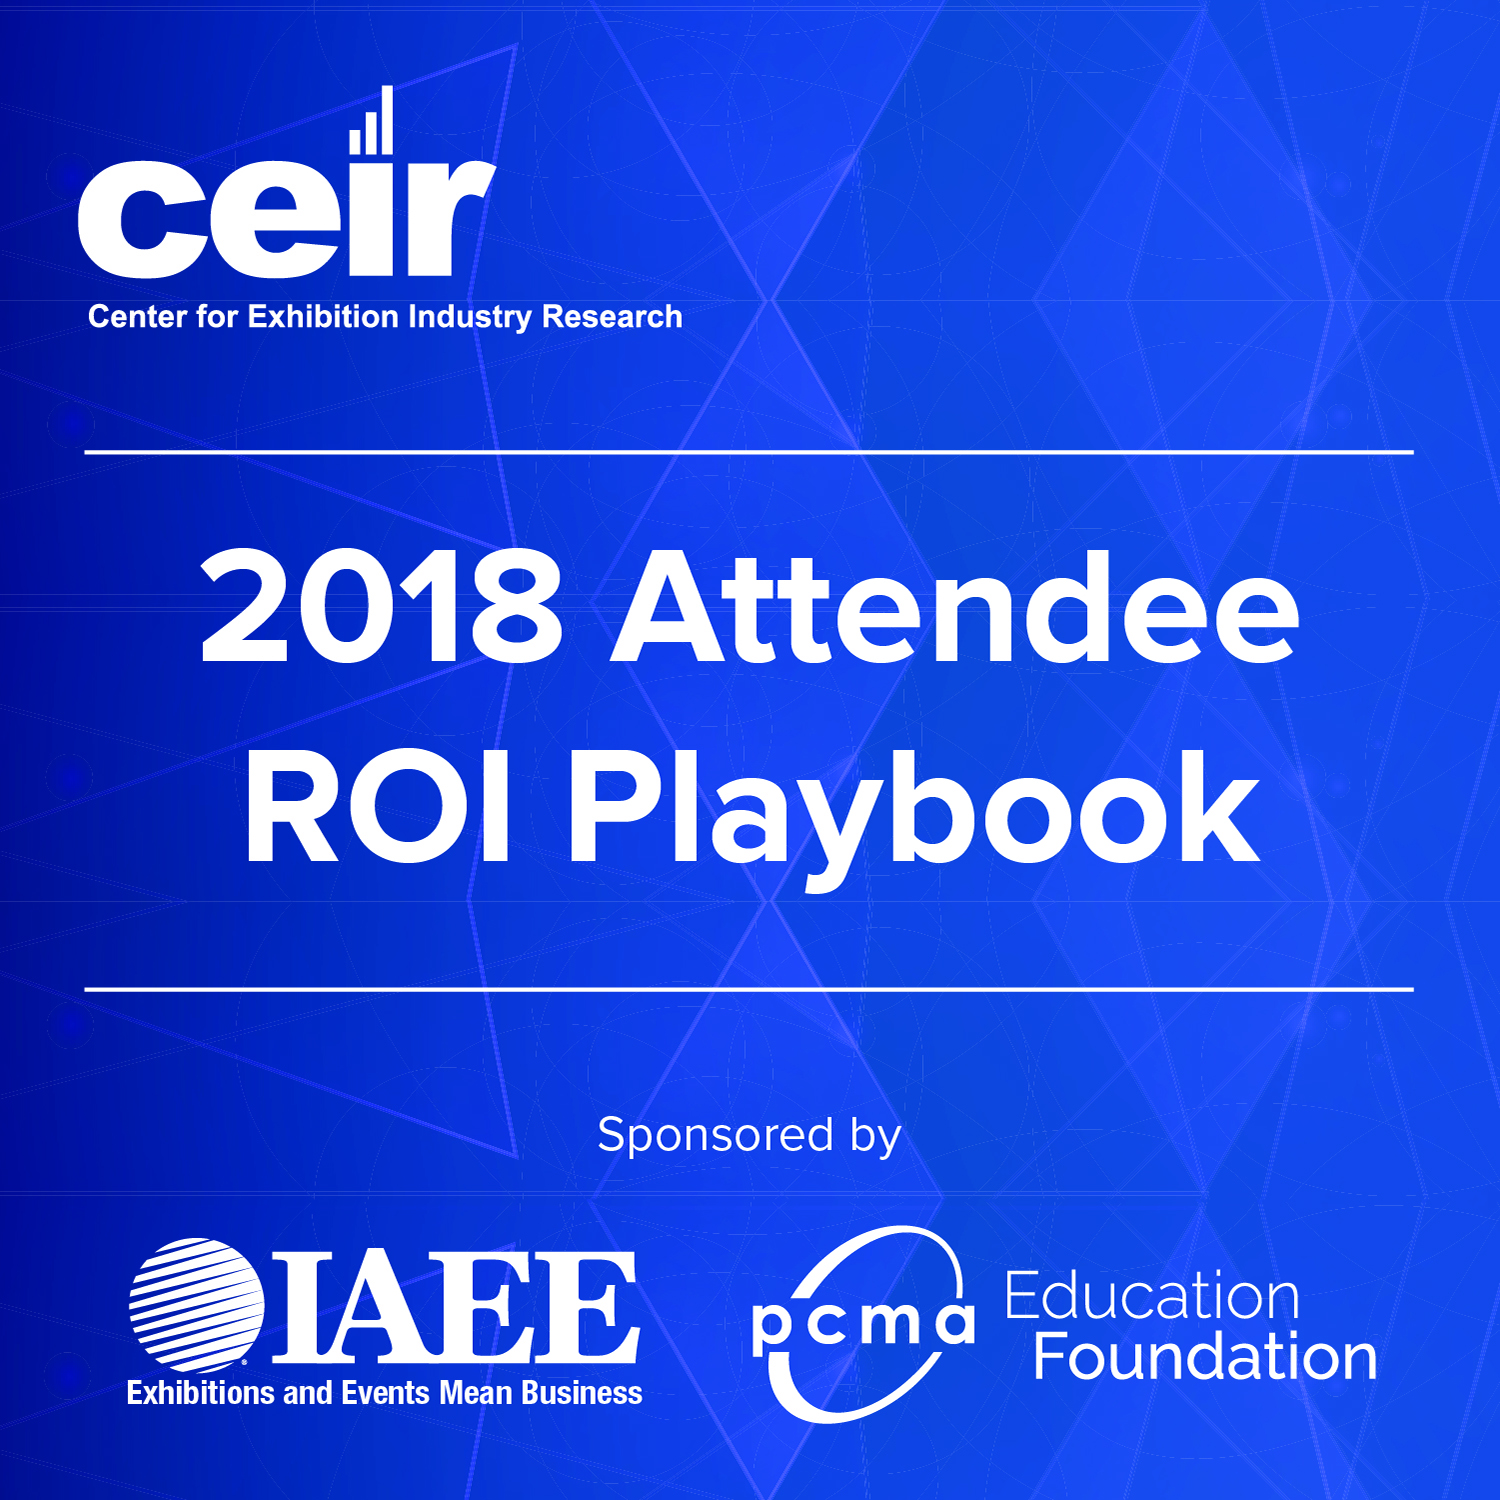 2018 Attendee ROI Playbook: Part 3